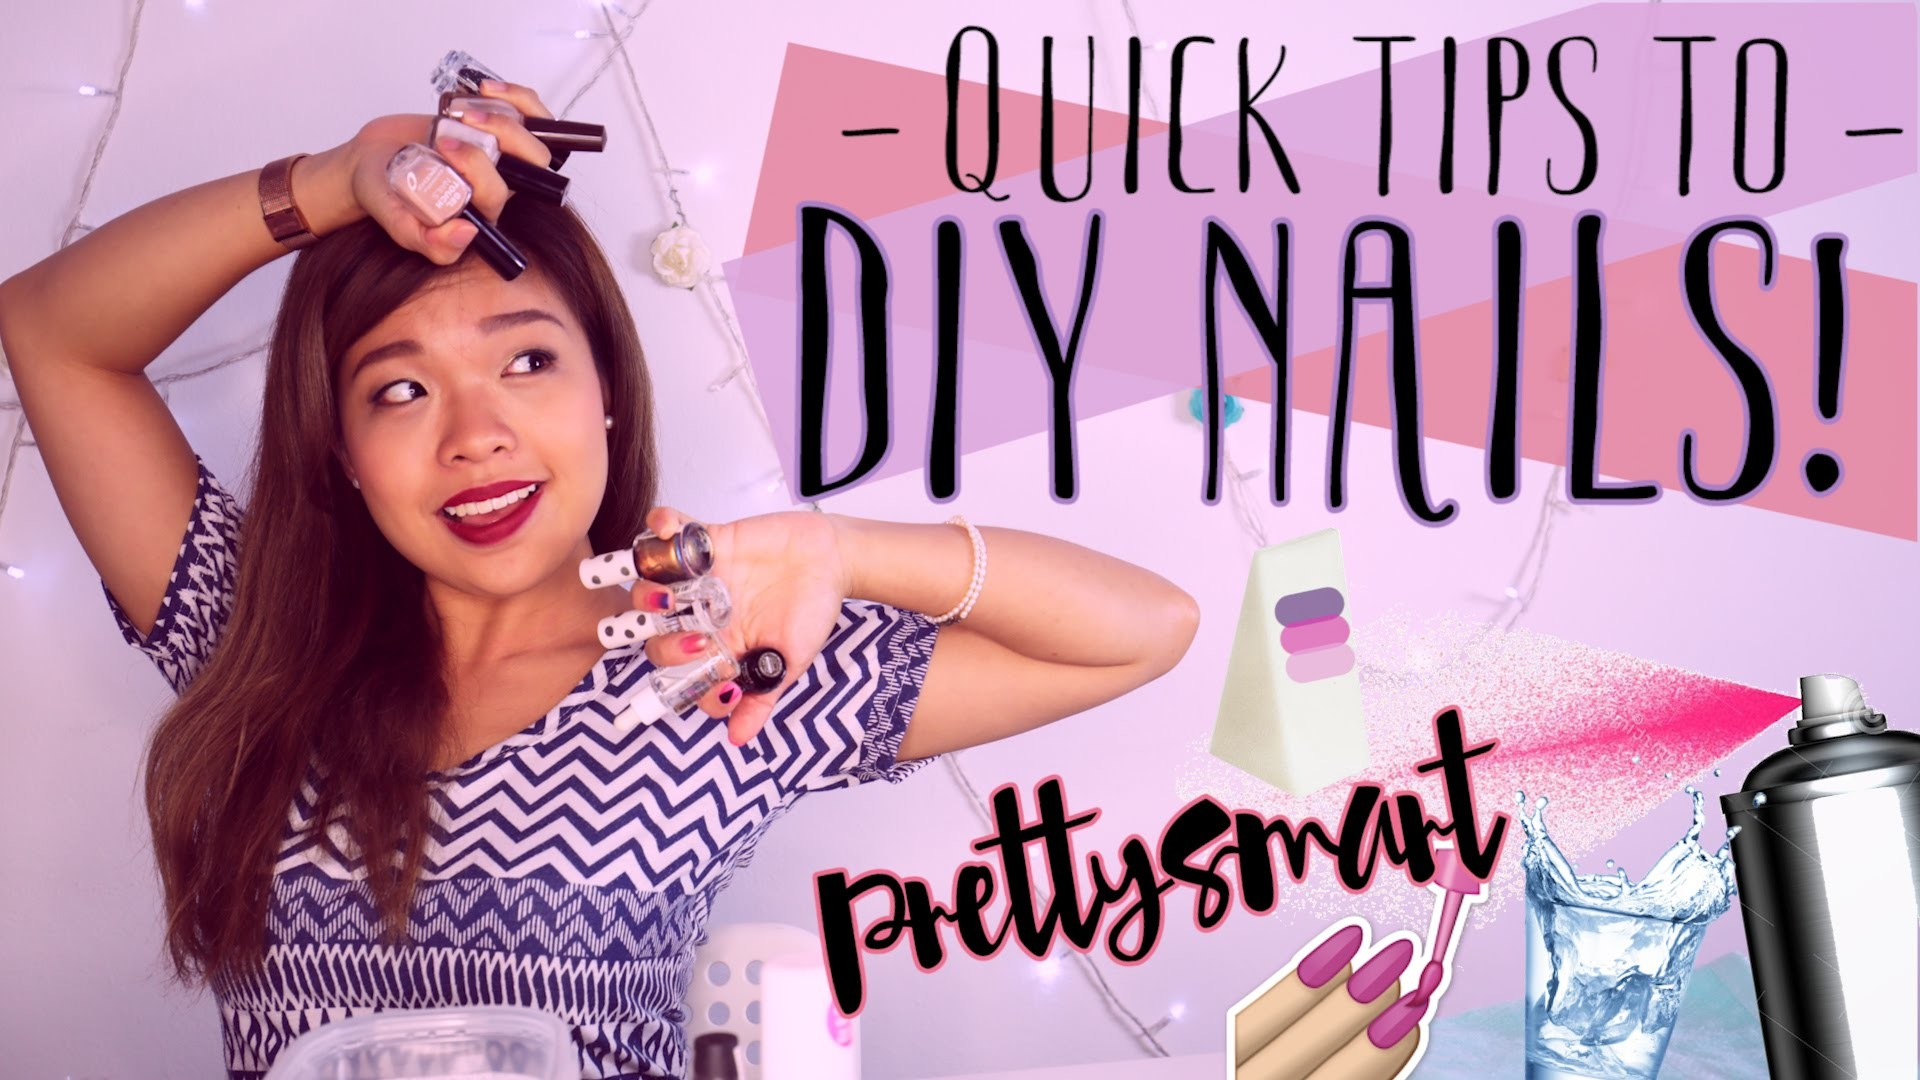 Quick Tips To DIY Nails!  - PrettySmart EP: 54